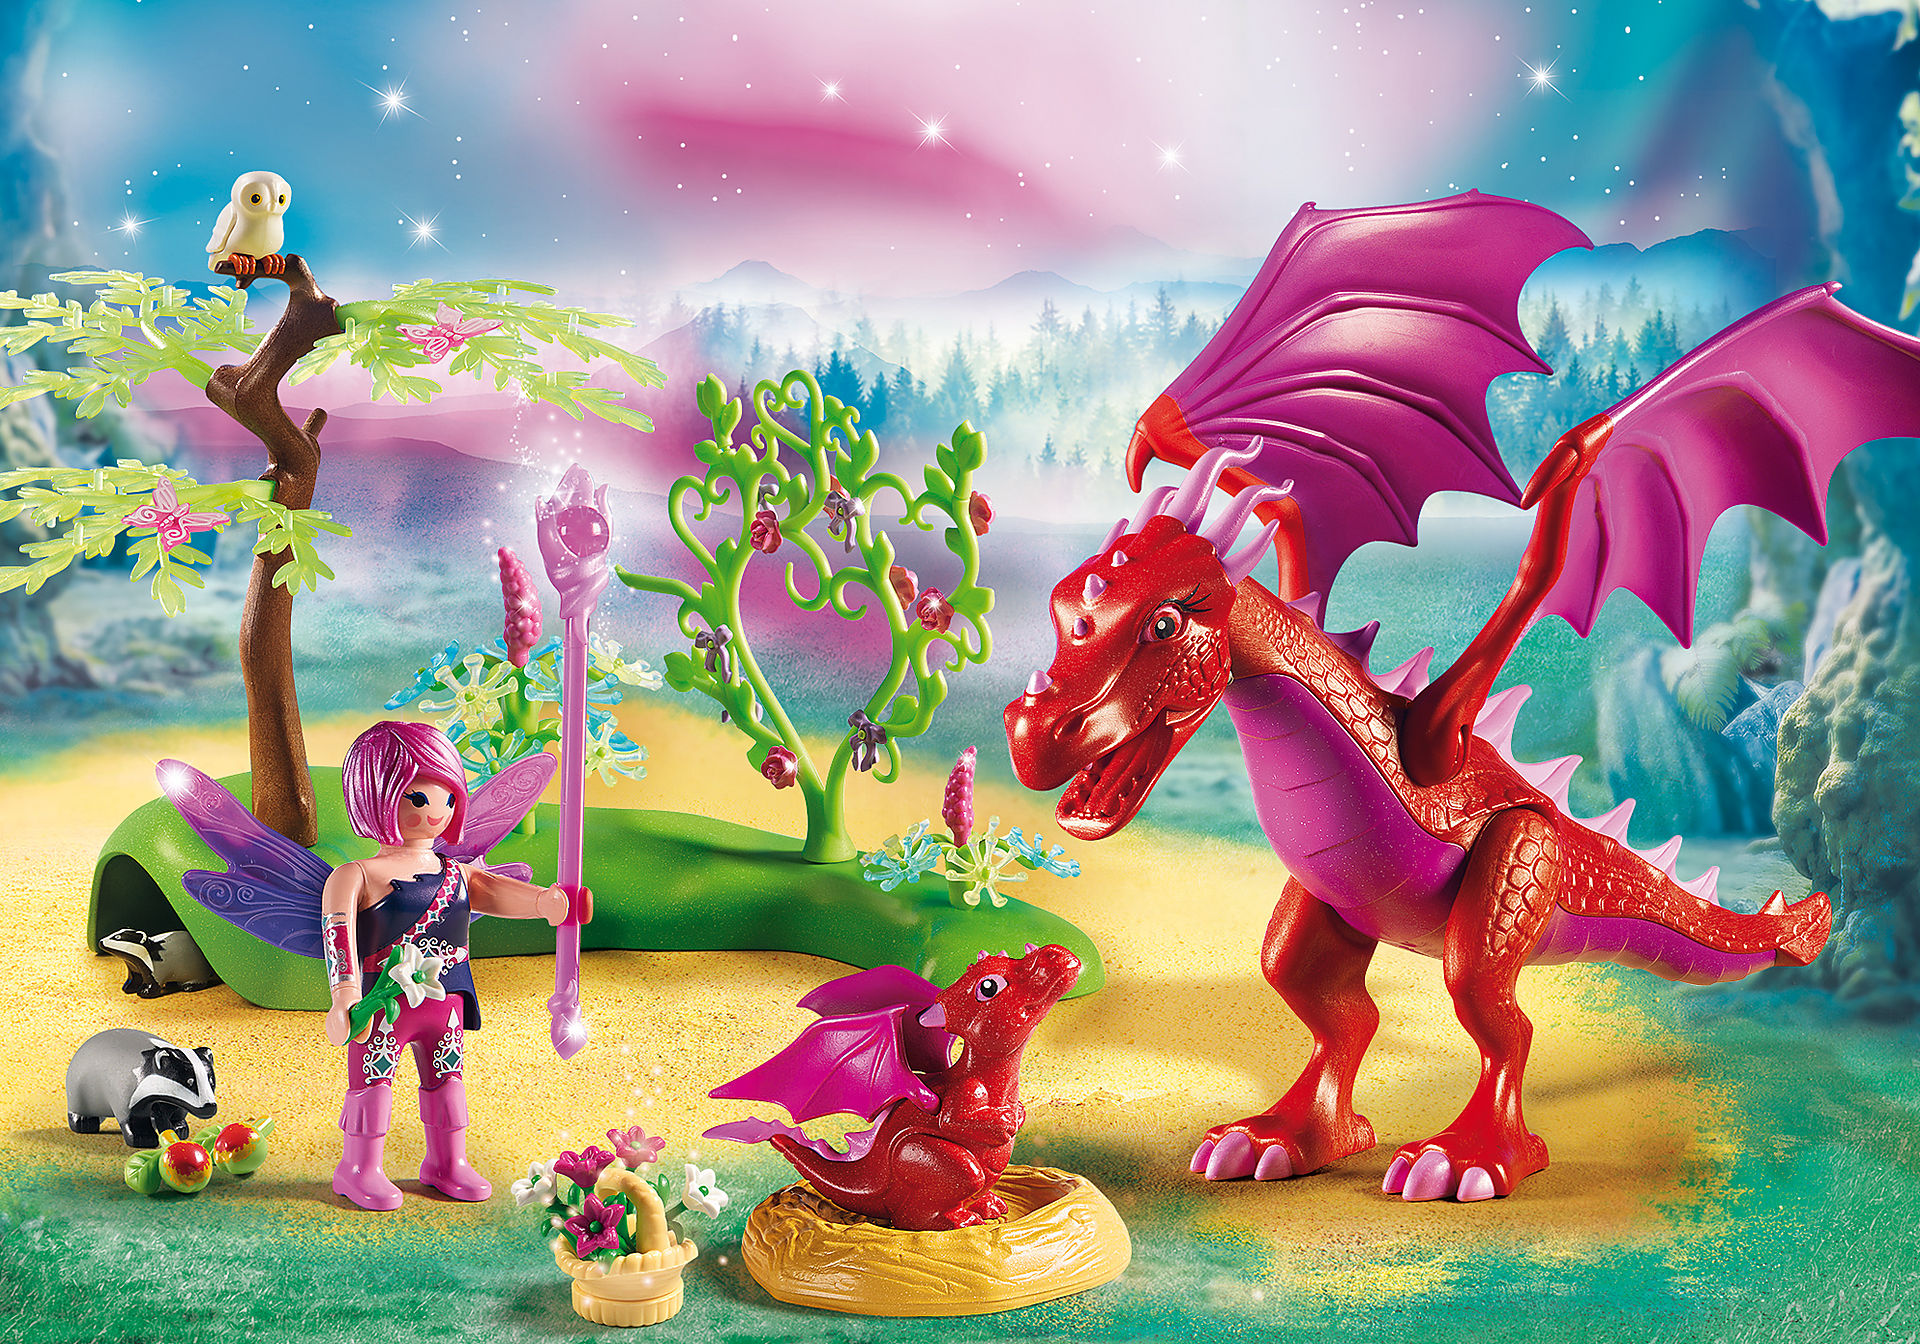 http://media.playmobil.com/i/playmobil/9134_product_detail/Friendly Dragon with Baby